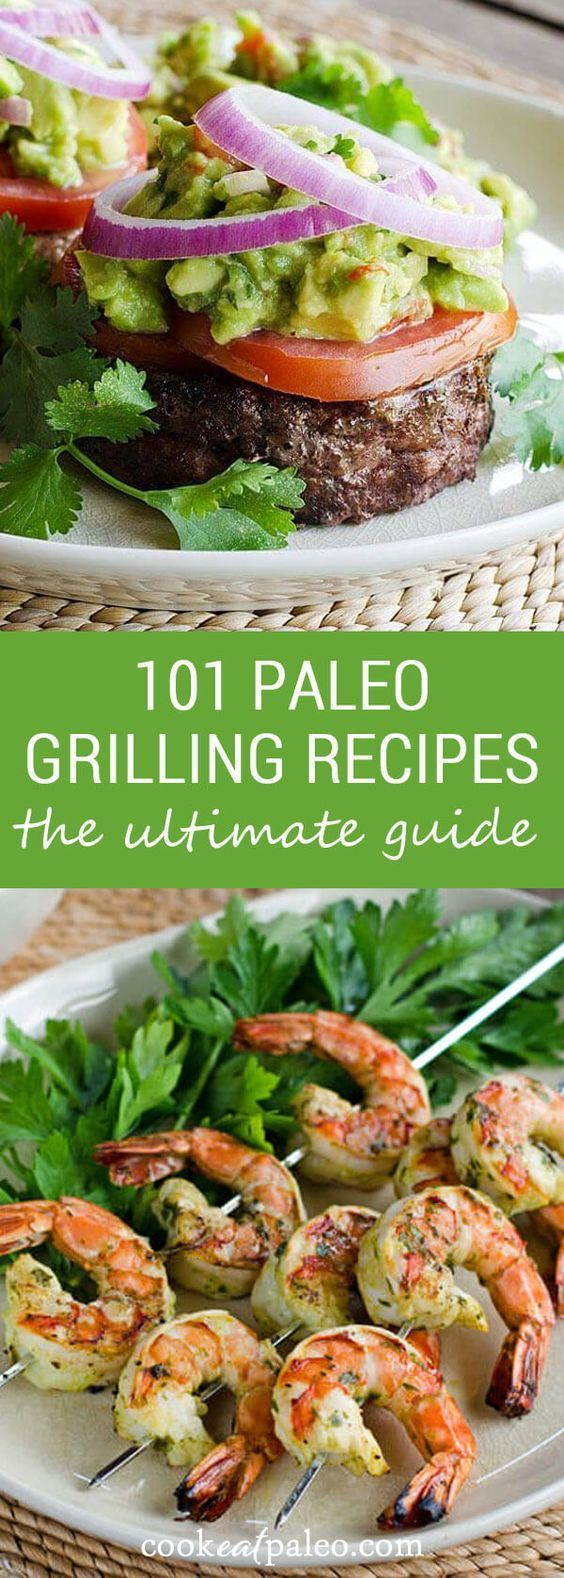 This Ultimate Guide to Summer Grilling includes 101 Paleo Recipes, resources, and tips for healthy grilling. Everything you need for a Paleo/gluten-free cookout! #paleo #grainfree #glutenfree